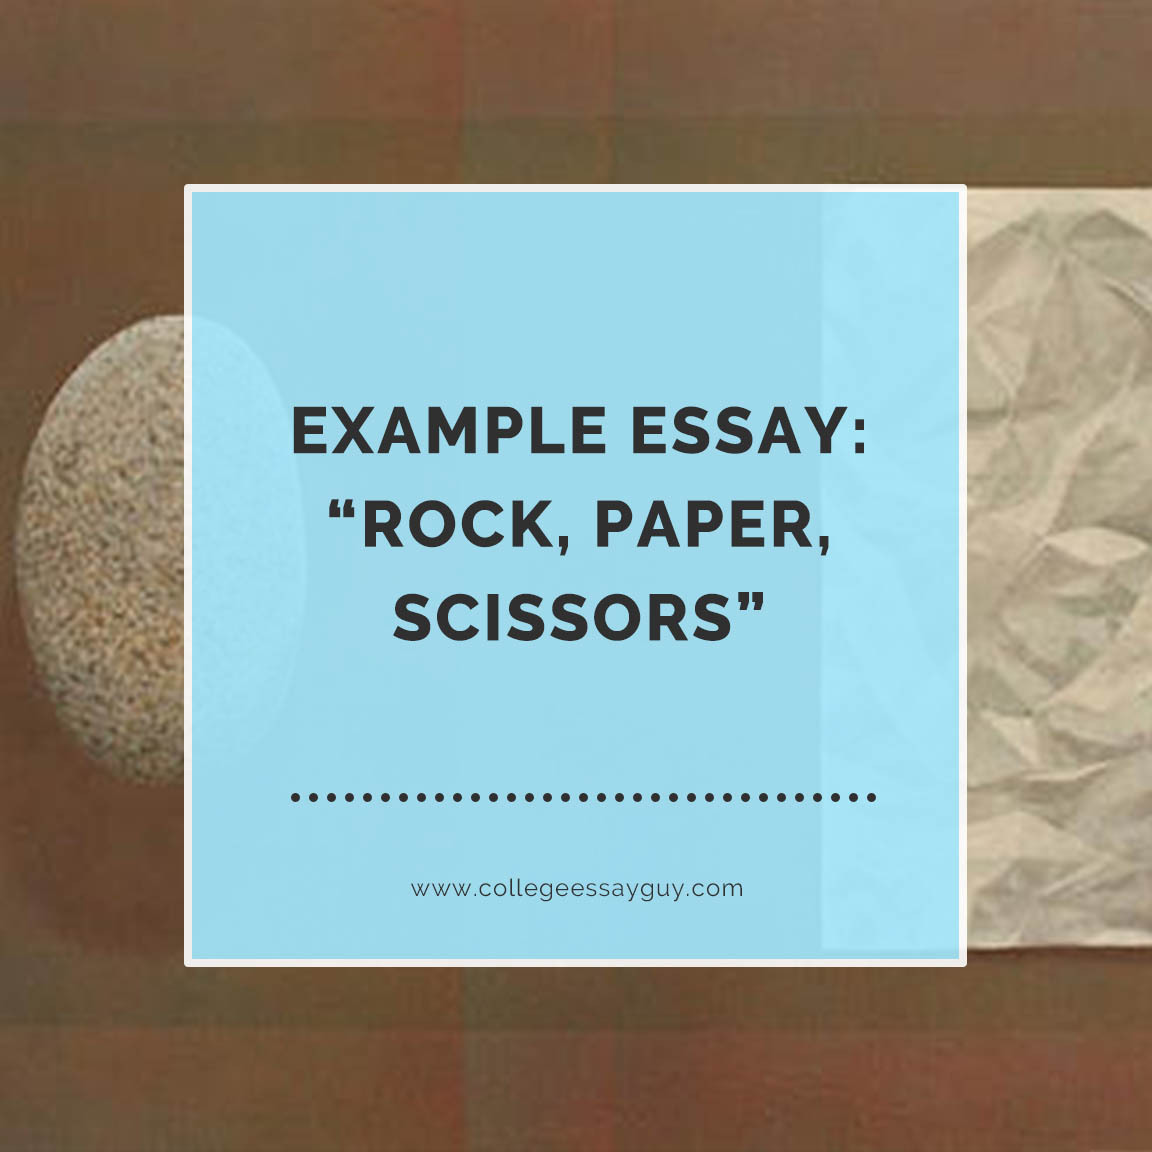 013 Essay Example Uchicago Essays Student Profiles Good Scholarship Tumblr Inline Oeyjdcg3aw1rpf997 University Of Chicago Questions Past Astounding Law That Worked Length Reddit Full